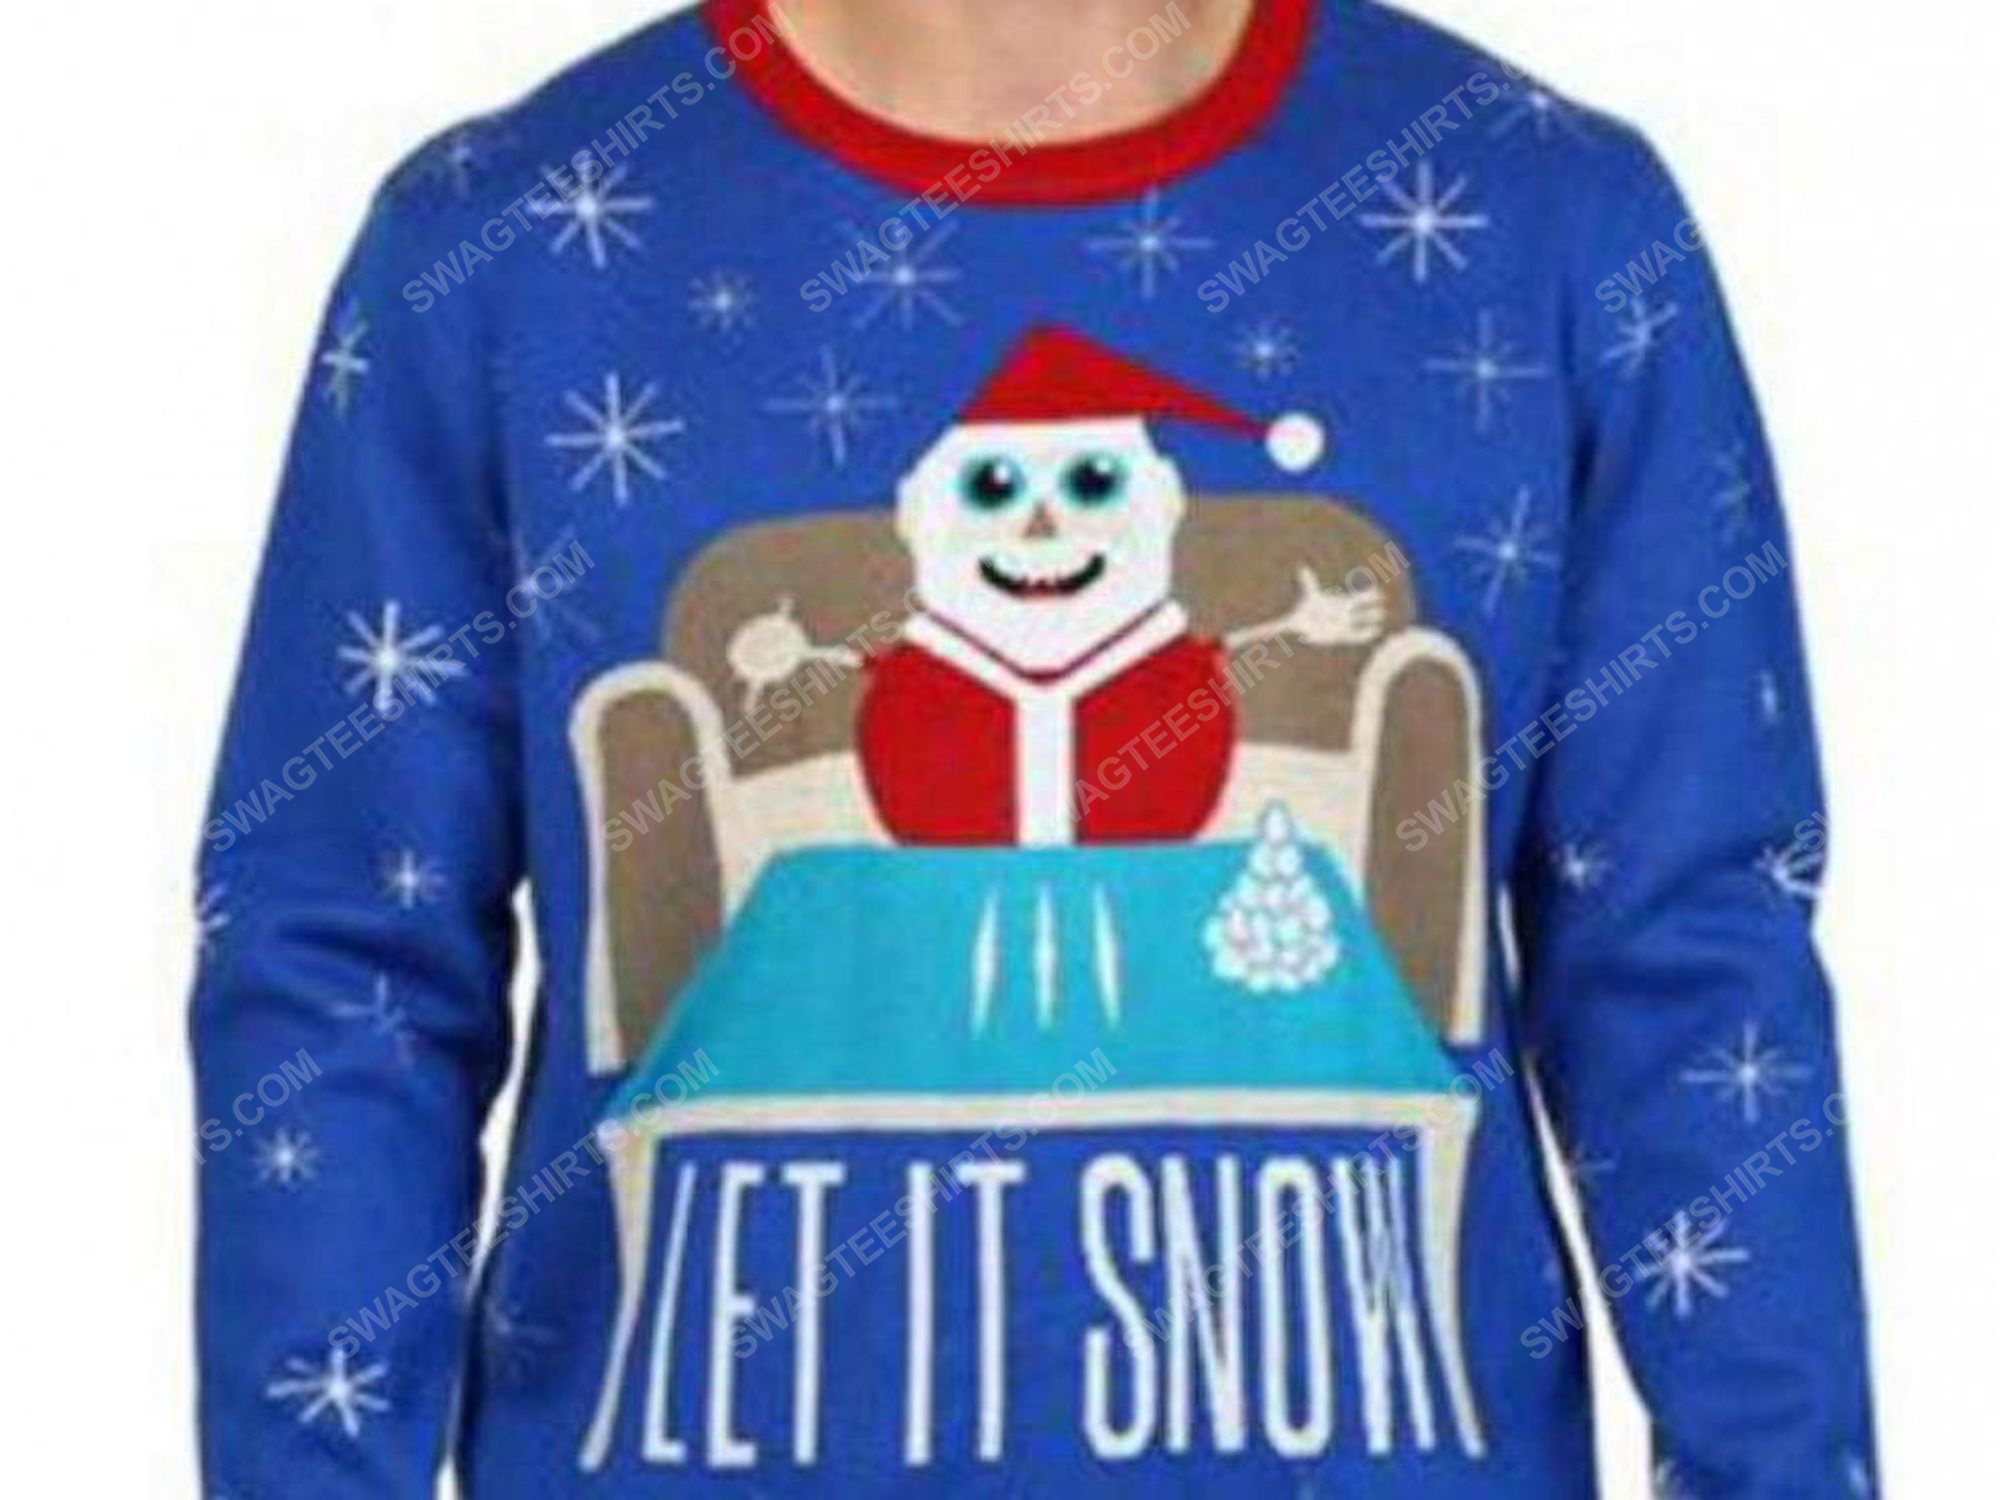 Christmas party let it snow cocaine full print ugly christmas sweater 2 - Copy (3)